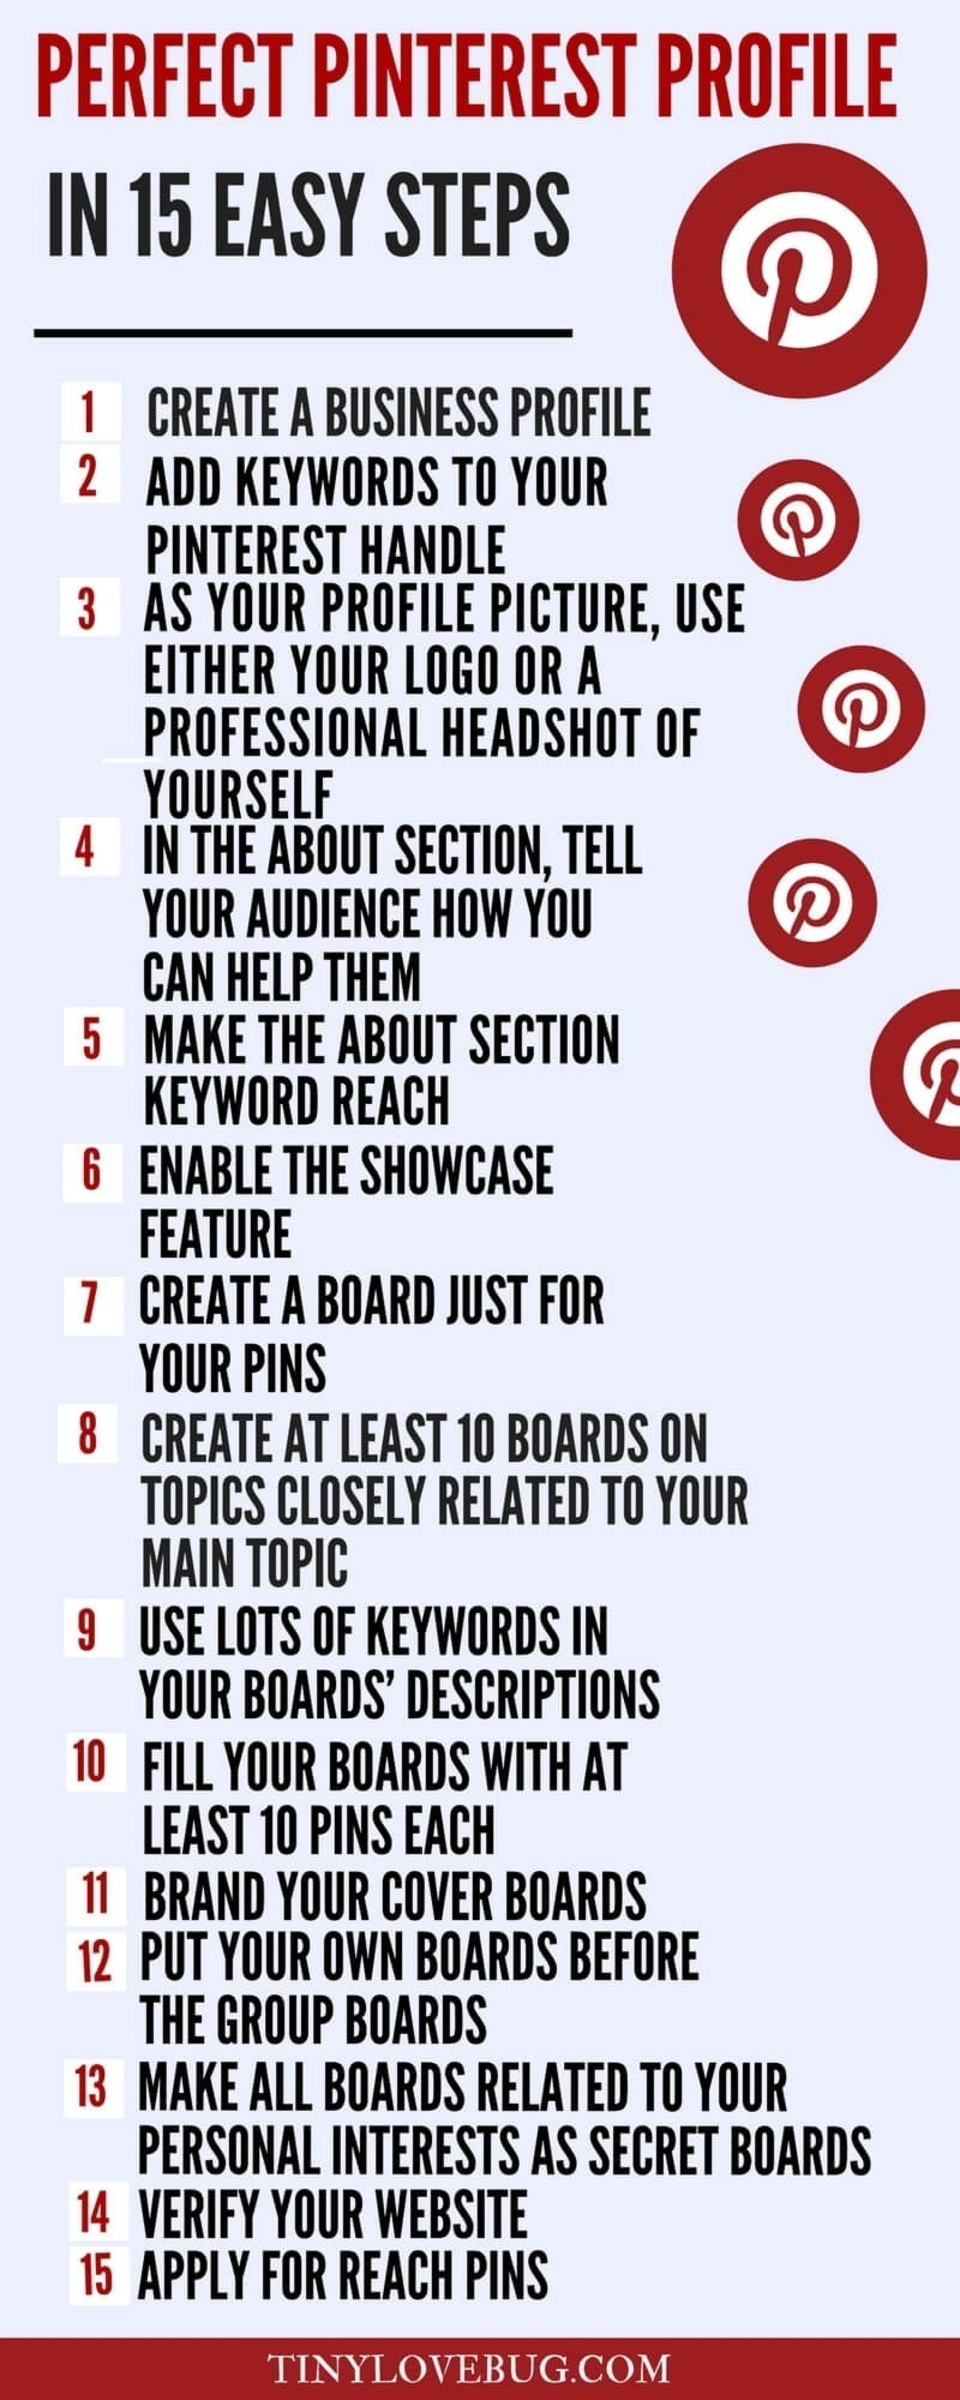 Pinterest for bloggers  perfect pinterest profile  infographic20180427 15503 1m9etn9